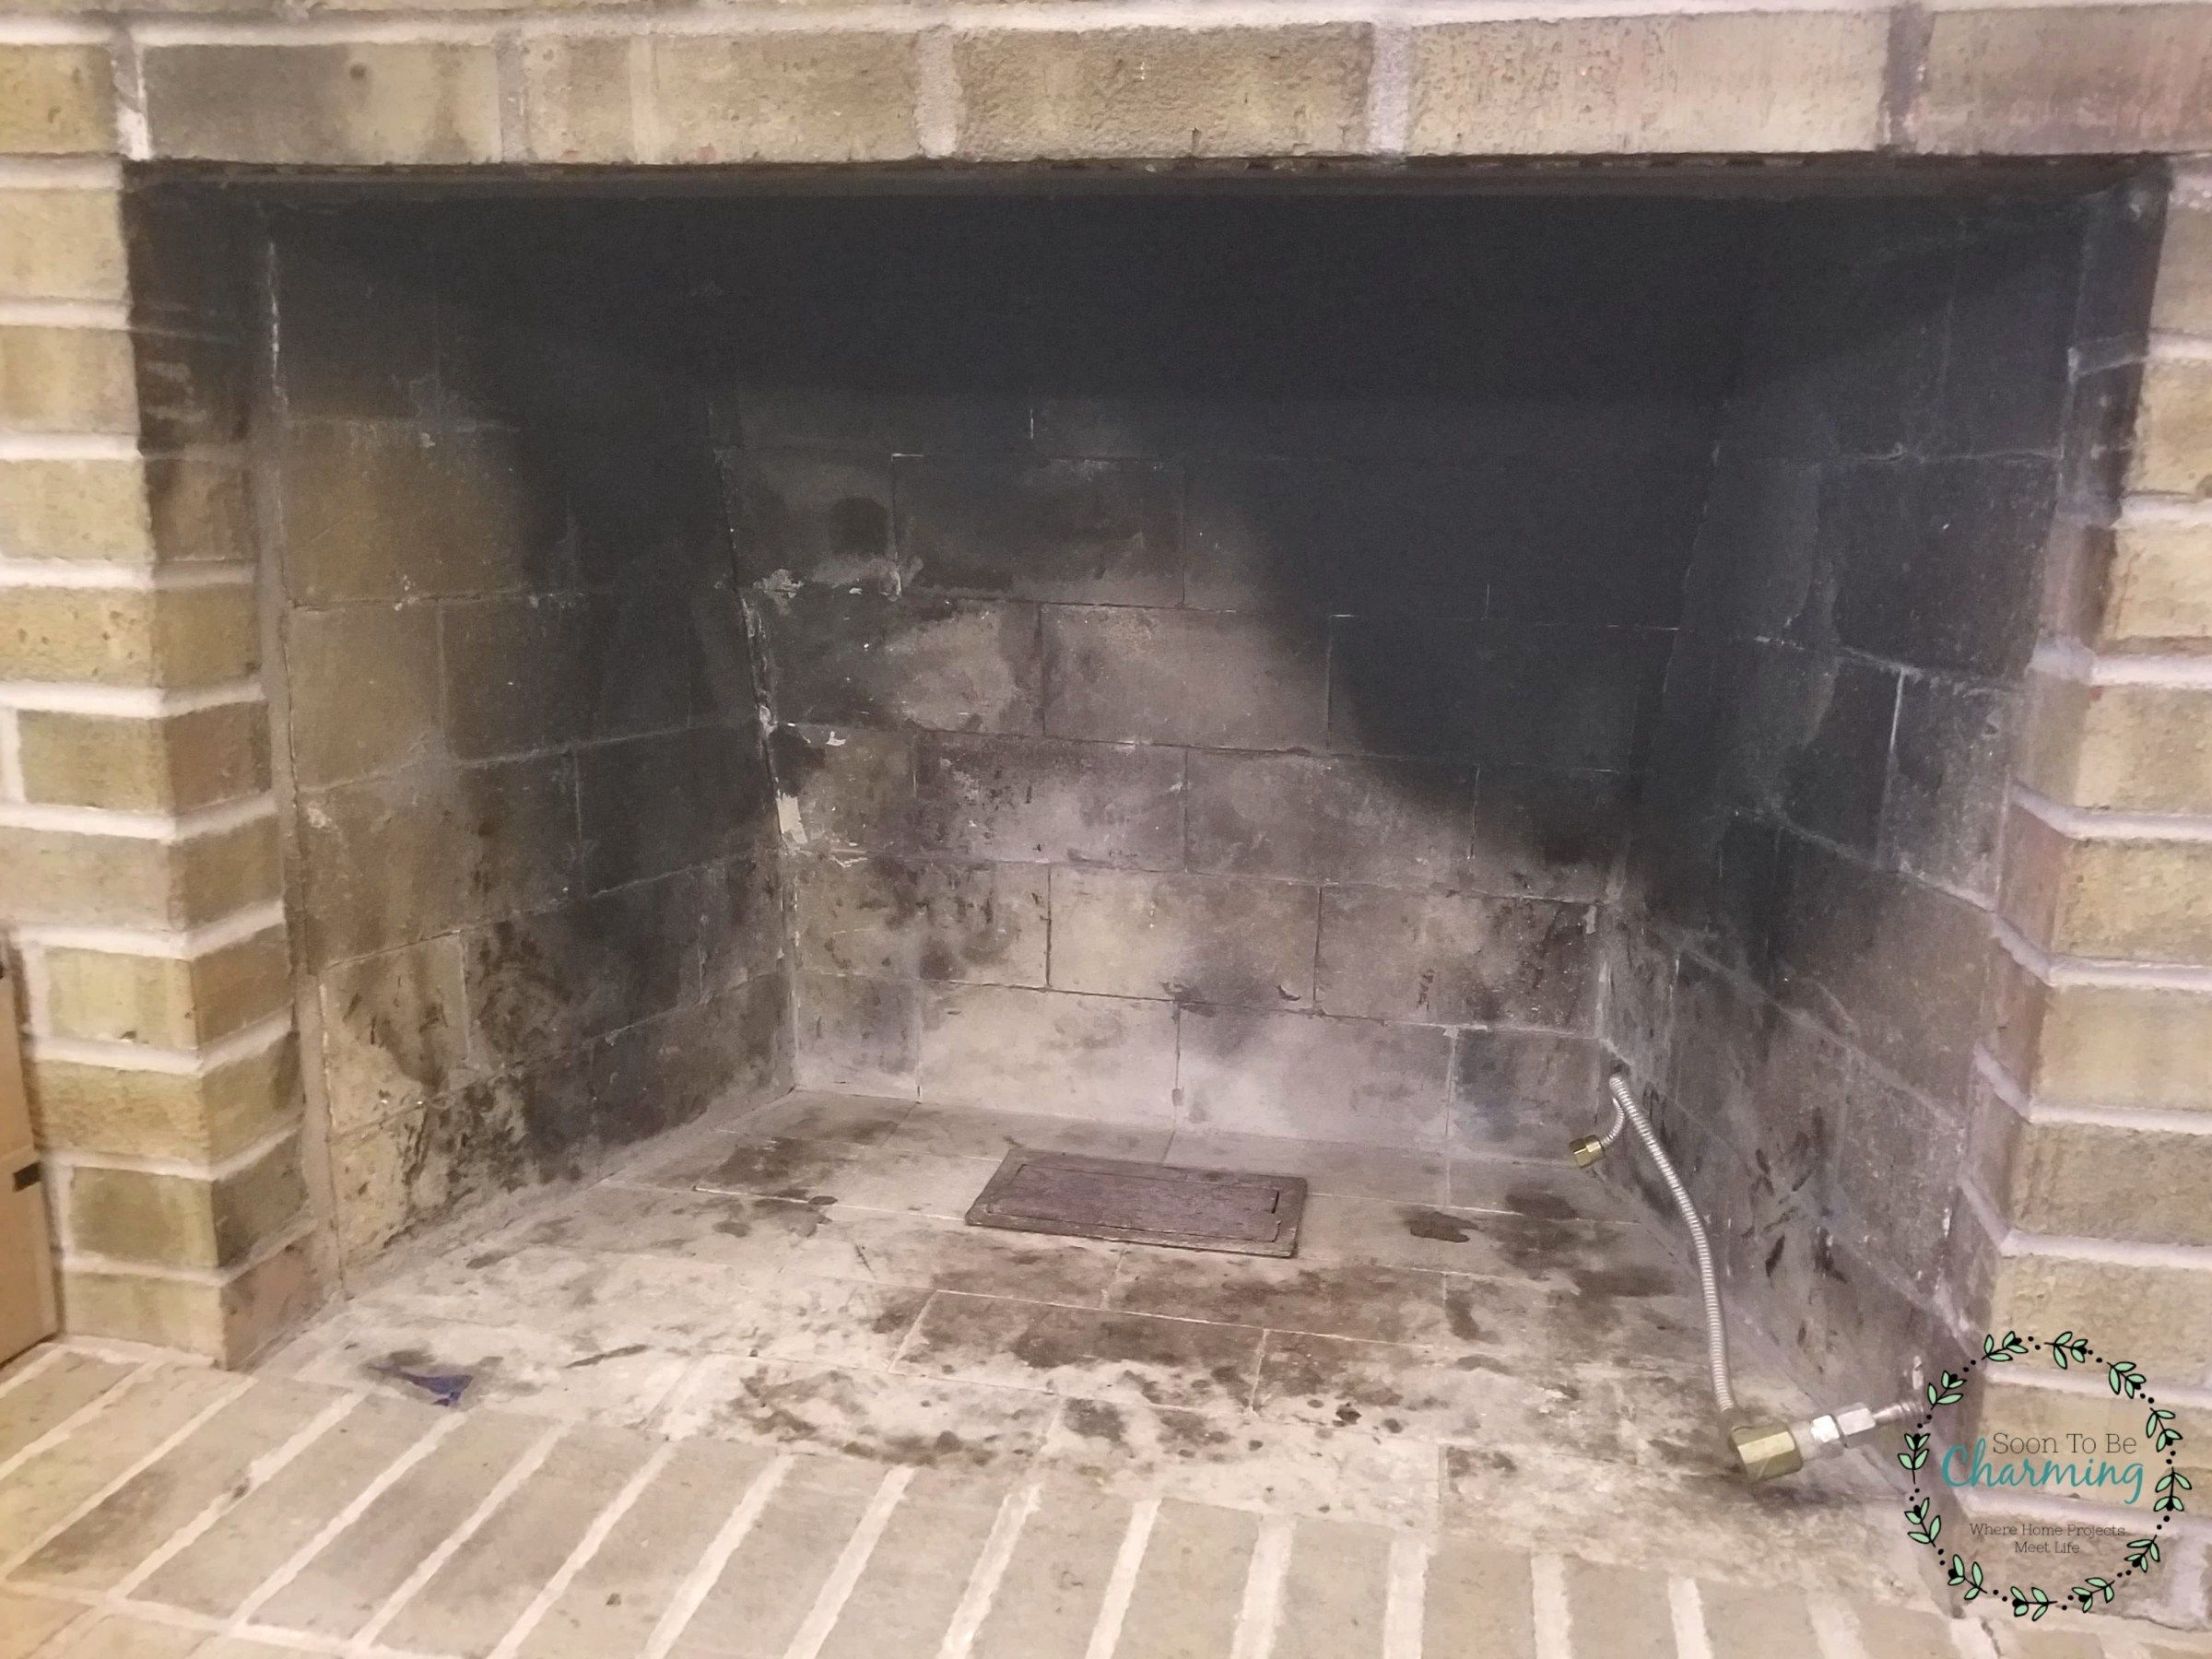 How To Clean Your Gas Fireplace Soon To Be Charming Gas